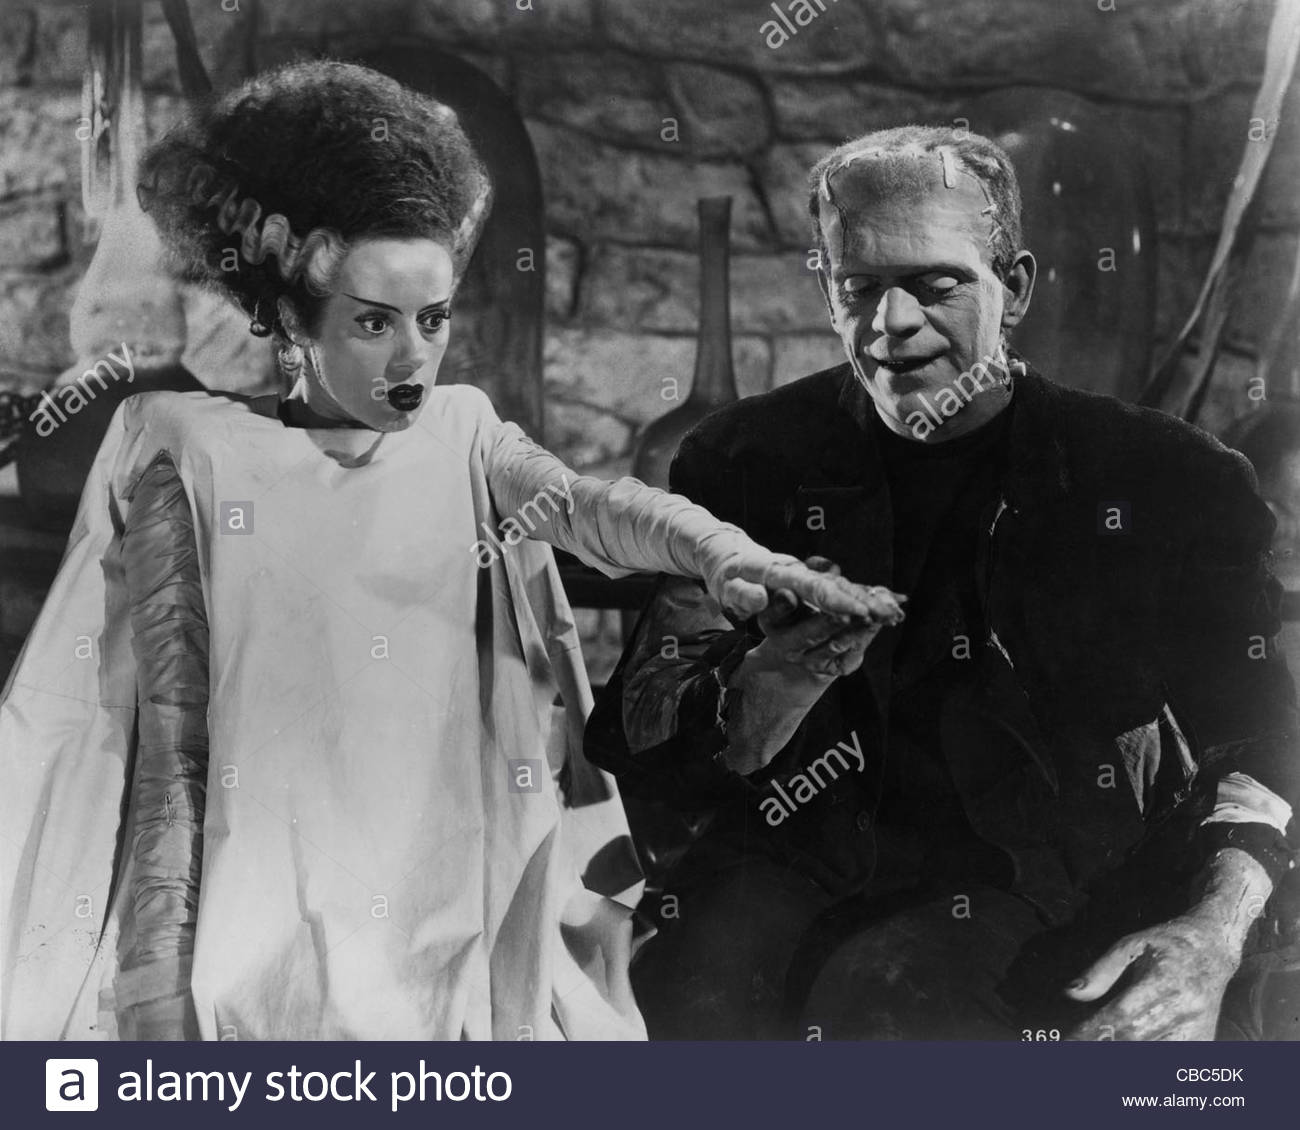 Elsa Lanchester and Boris Karloff in the 1935 film 'The Bride of Frankenstein', directed by James Whale. - Stock Image